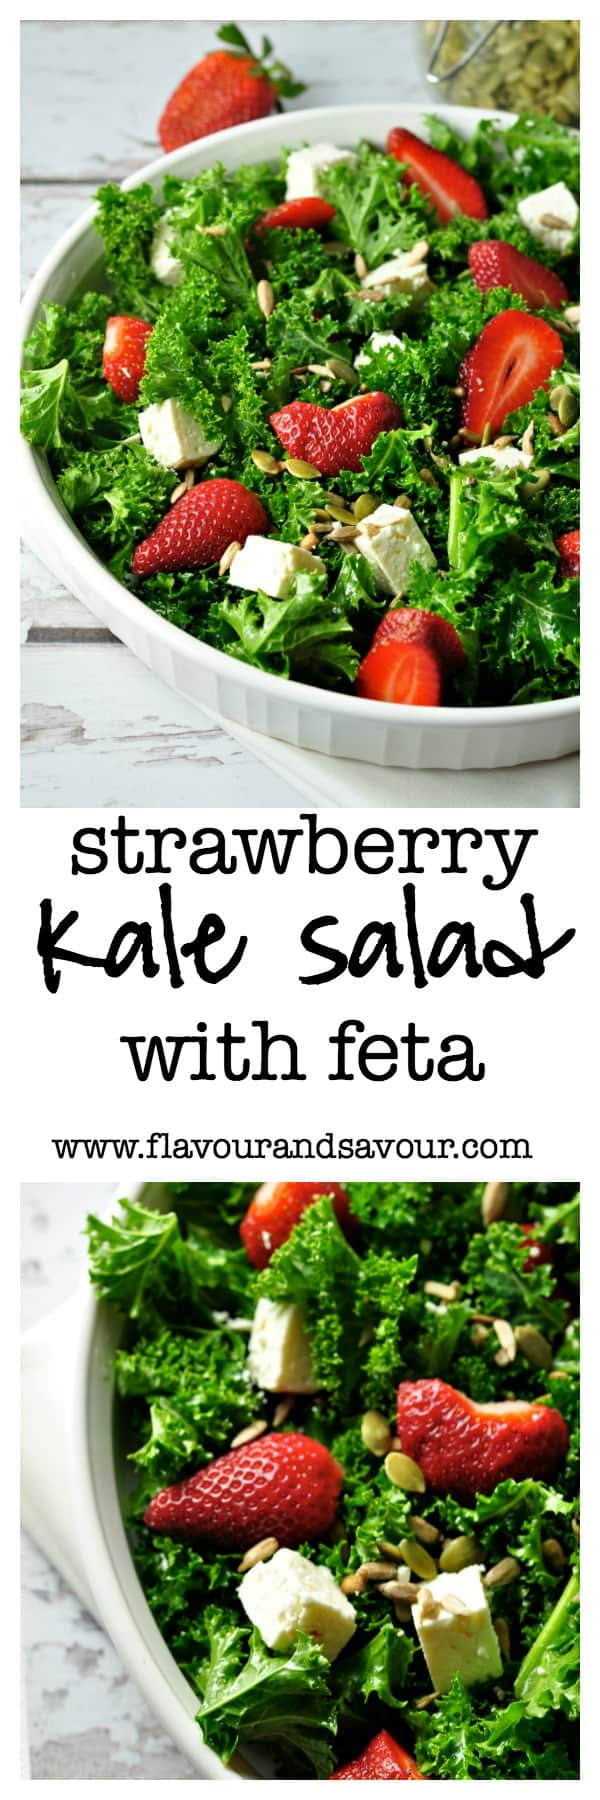 Strawberry Kale Salad with Feta and Poppy Seed Dressing by Flavour and Savour